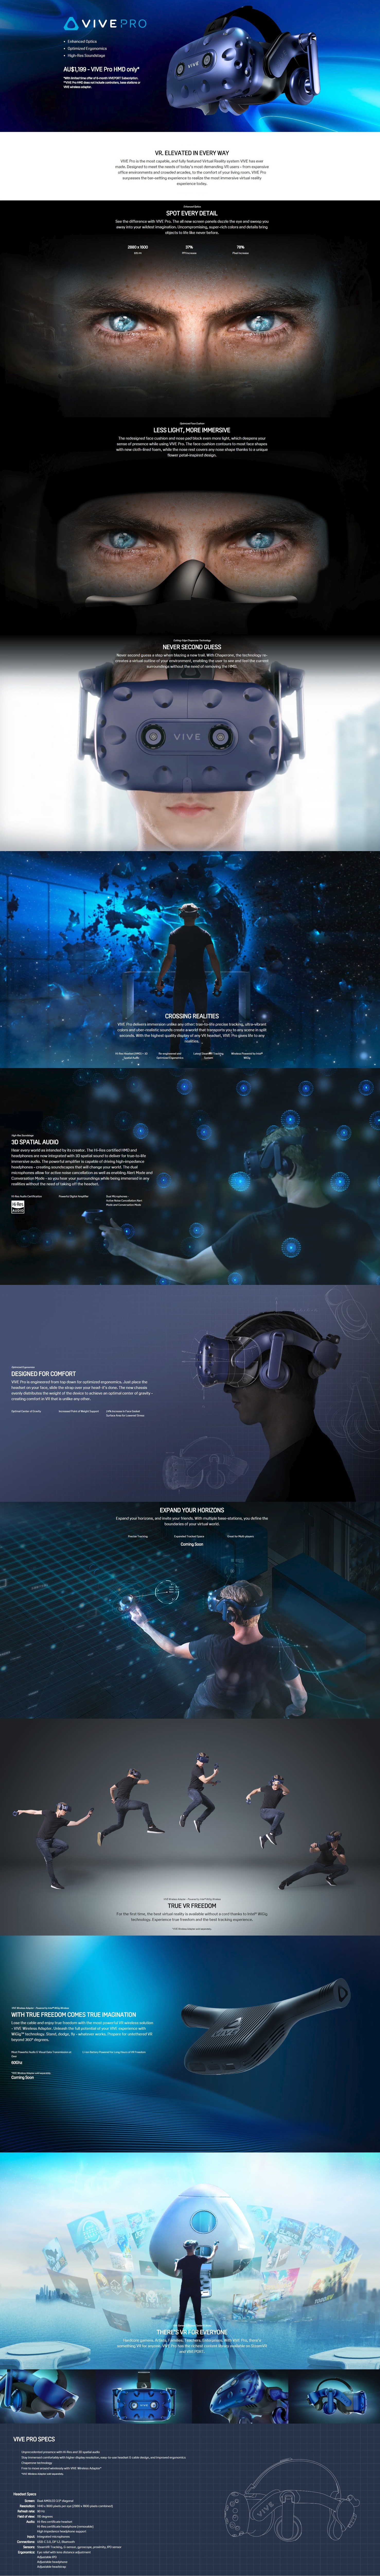 27011d22f99a VIVE Pro surpasses the bar-setting experience to realize the most immersive  virtual reality experience today. 2880x1600 AMOLED